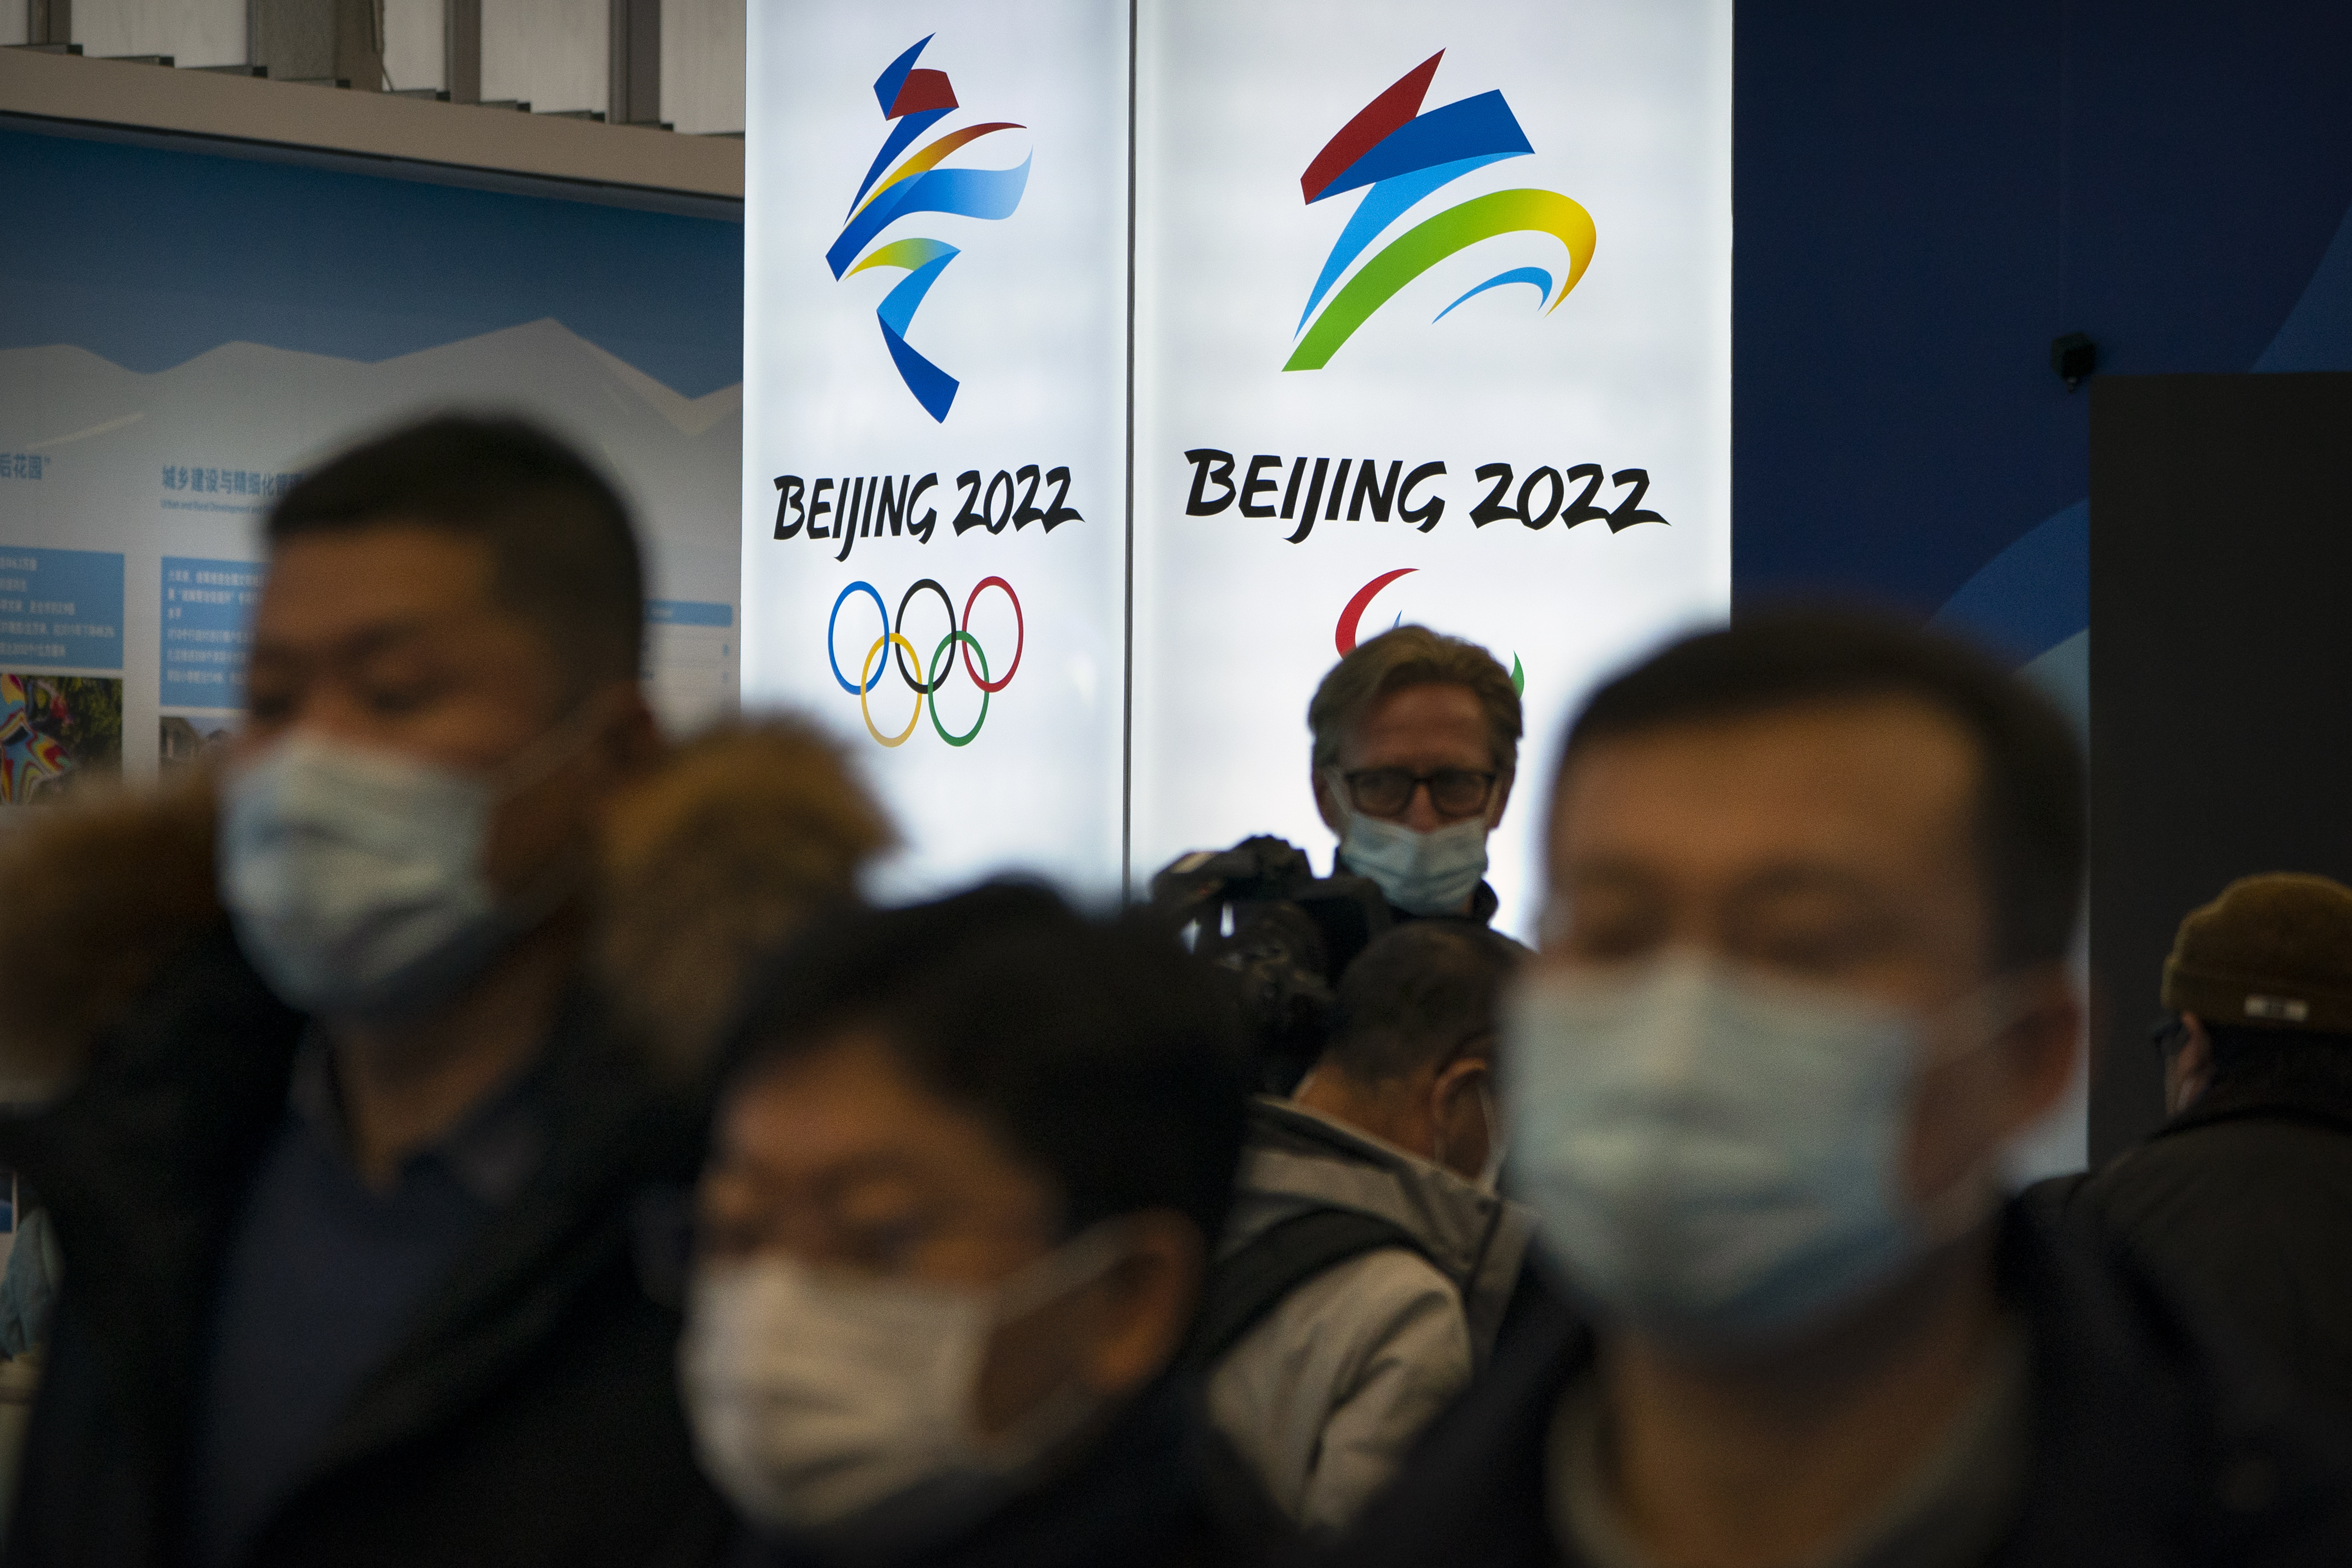 People wearing face masks to protect against the spread of COVID-19 look at an exhibit tied to the 2022 Olympic Winter Games.